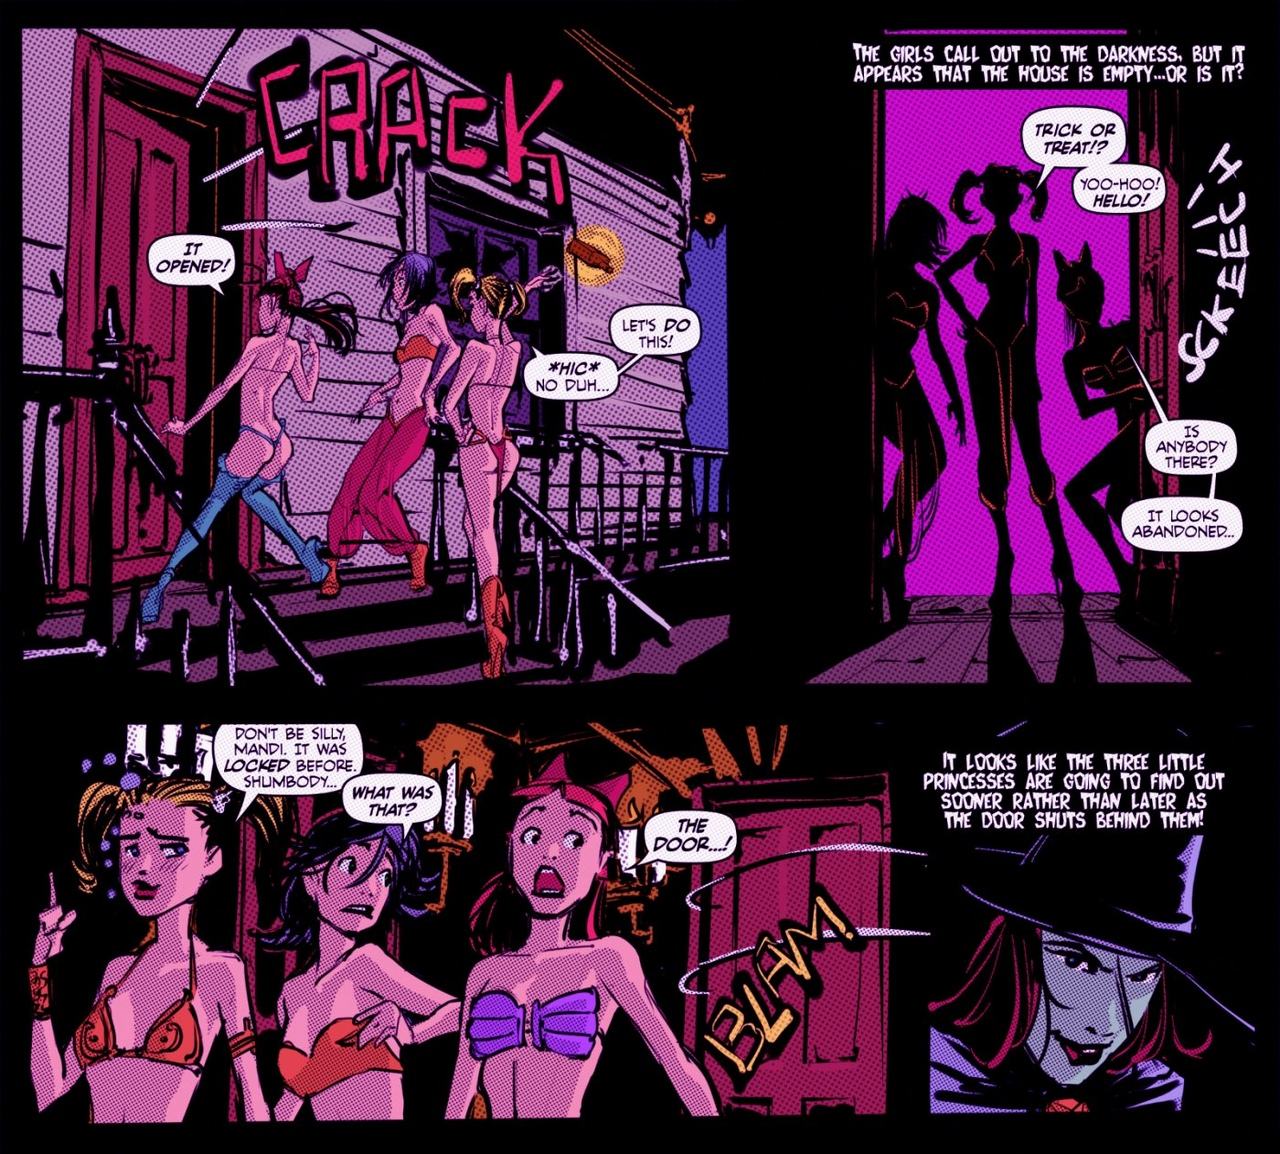 Dick-Or-Treat 6 free sex comic